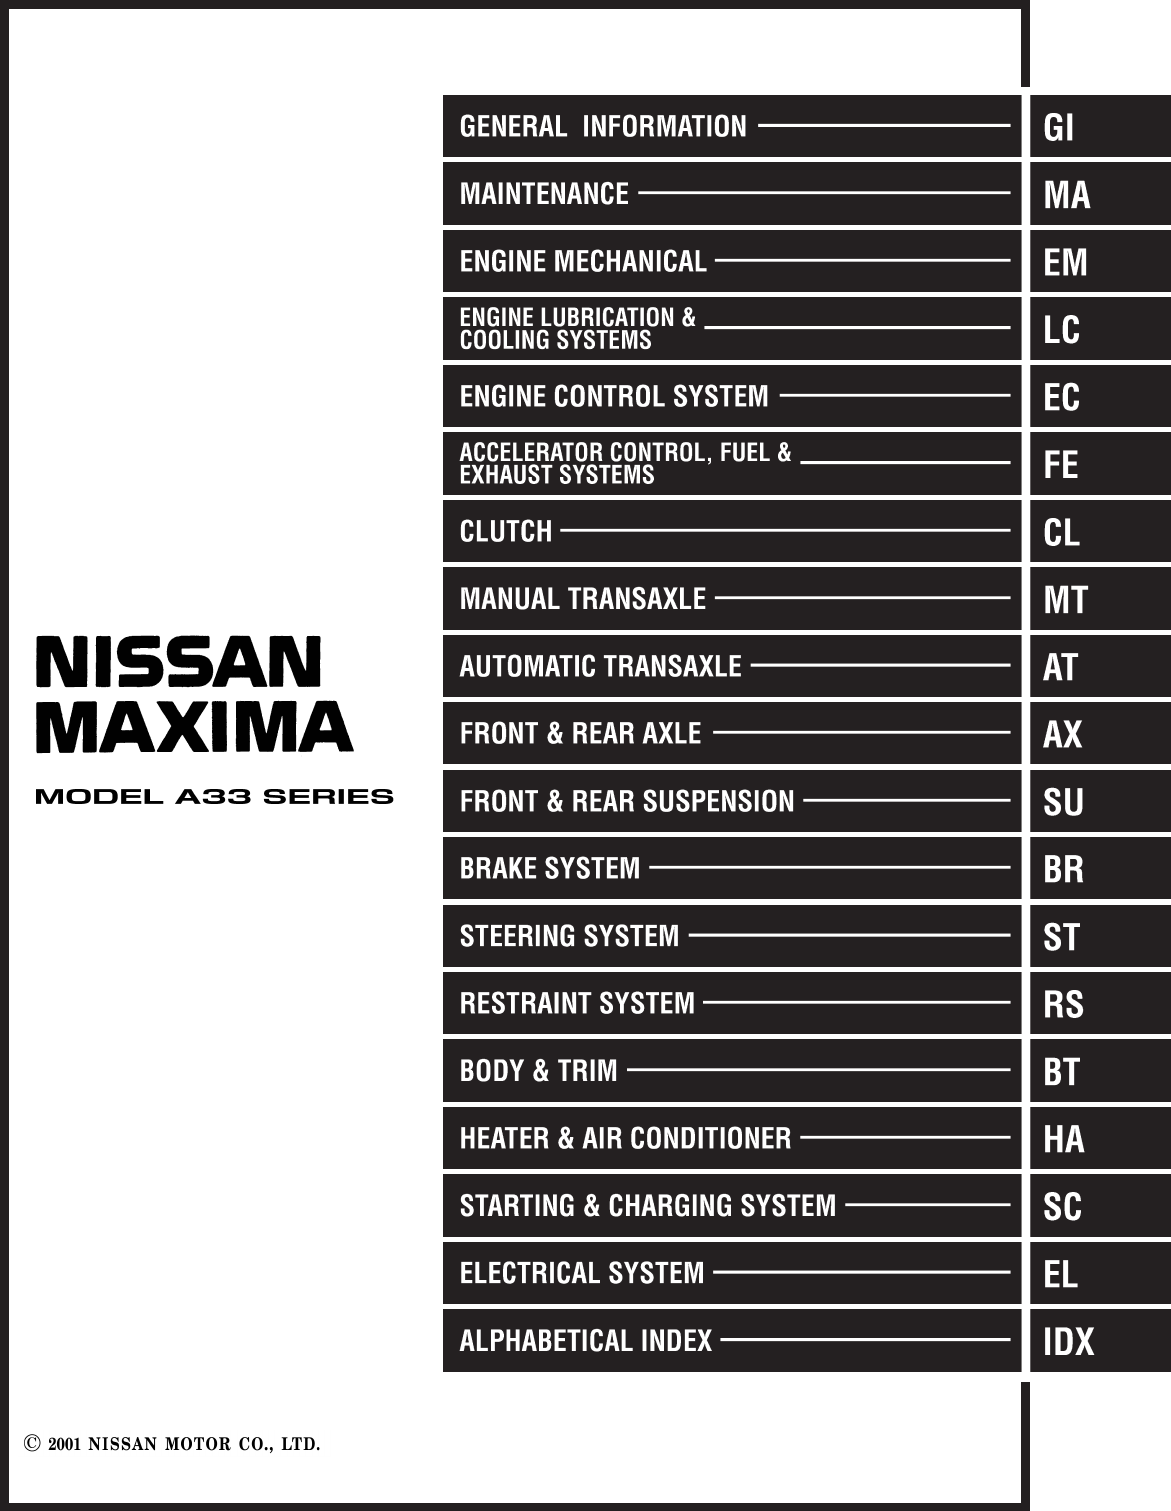 2001 Nissan Maxima Fuse Box Diagram Pdf Schematics Workshop Manual 11 Codes